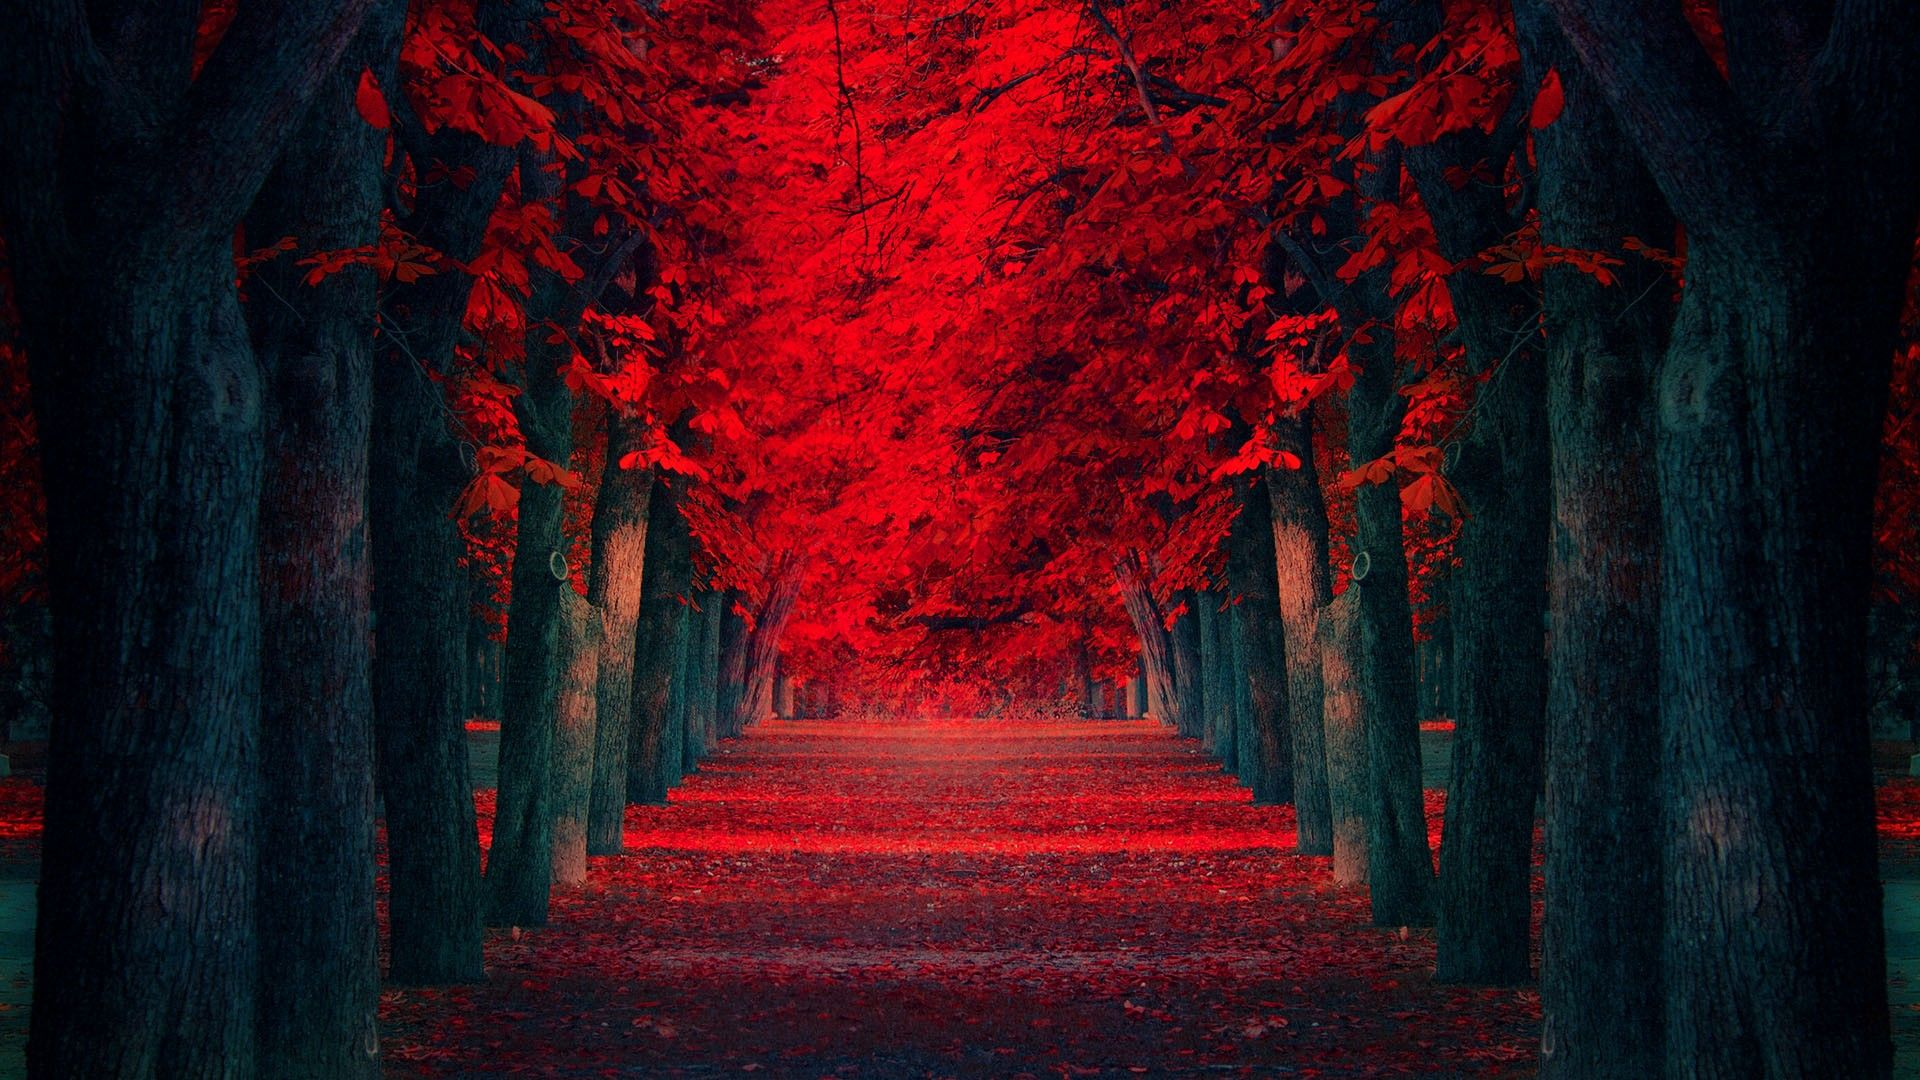 Wish One Day I Could Visit These Places Red Maple Tree Tree Photography Beautiful Tree